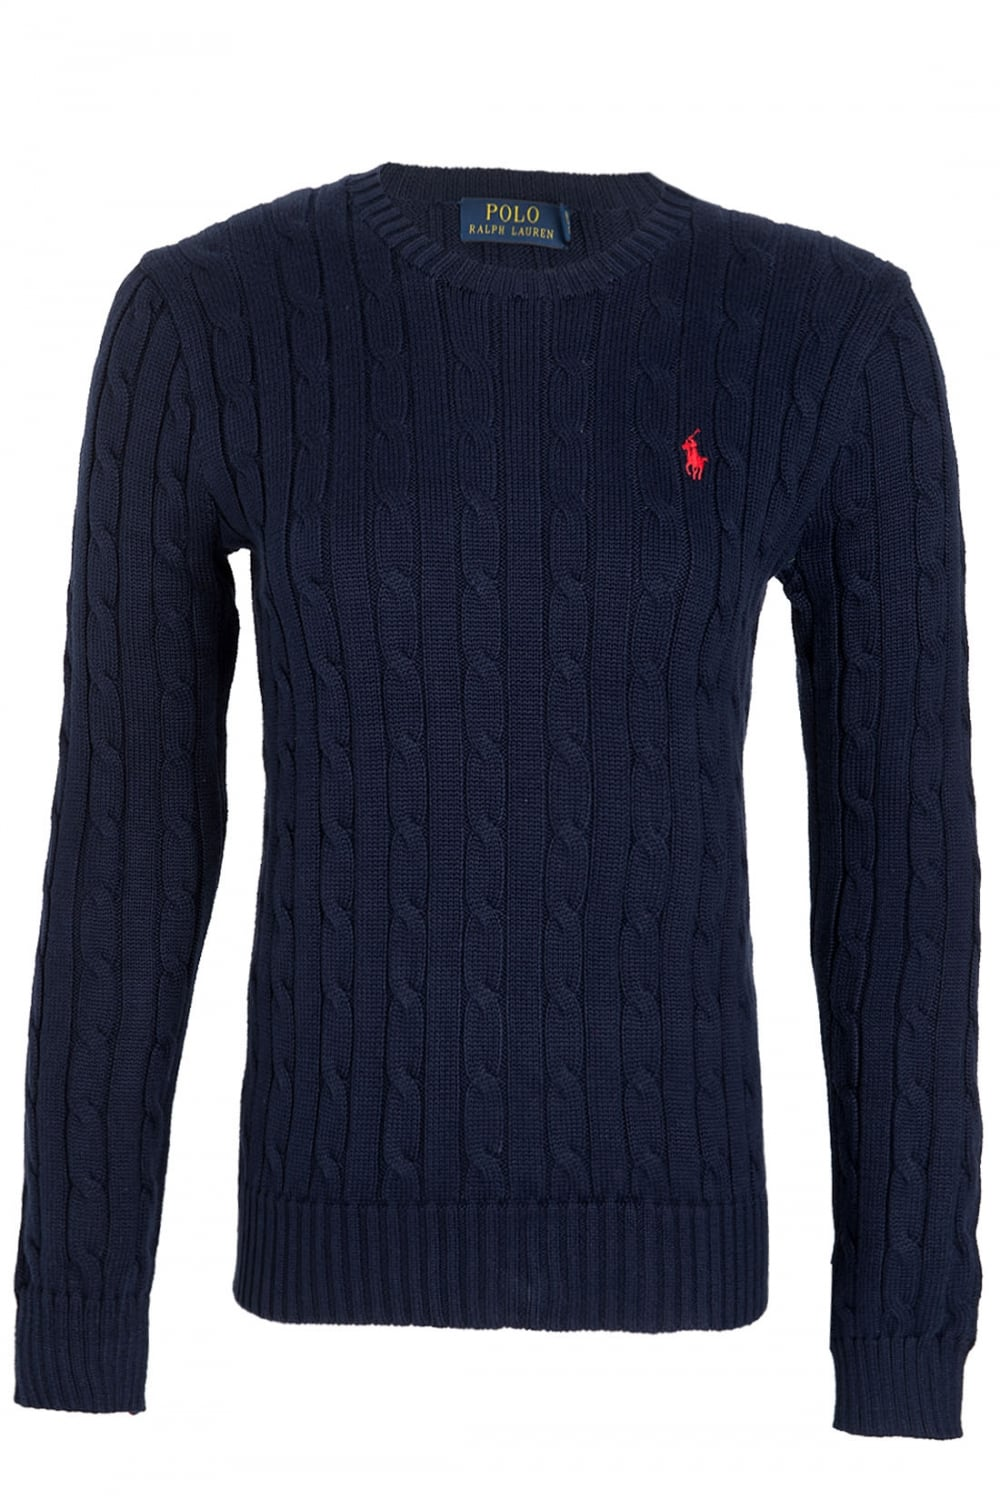 RALPH LAUREN Ralph Lauren Polo Julianna Womens Cable Knit Crew Neck Jumper  Navy - RALPH LAUREN from Circle Fashion UK